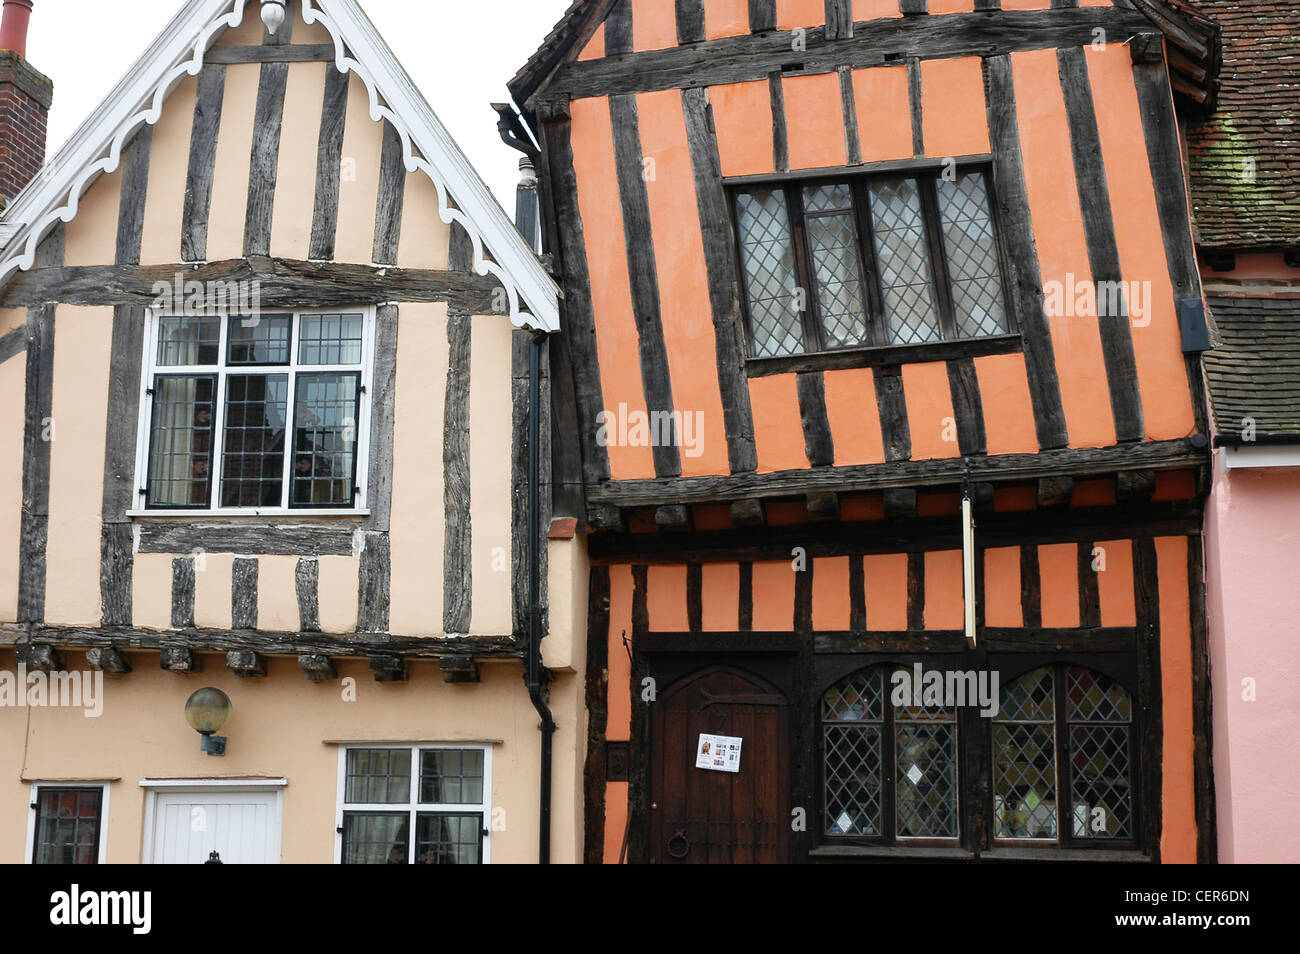 The Tudor facia of a terrace of houses in the Suffolk village of Lavenham. - Stock Image